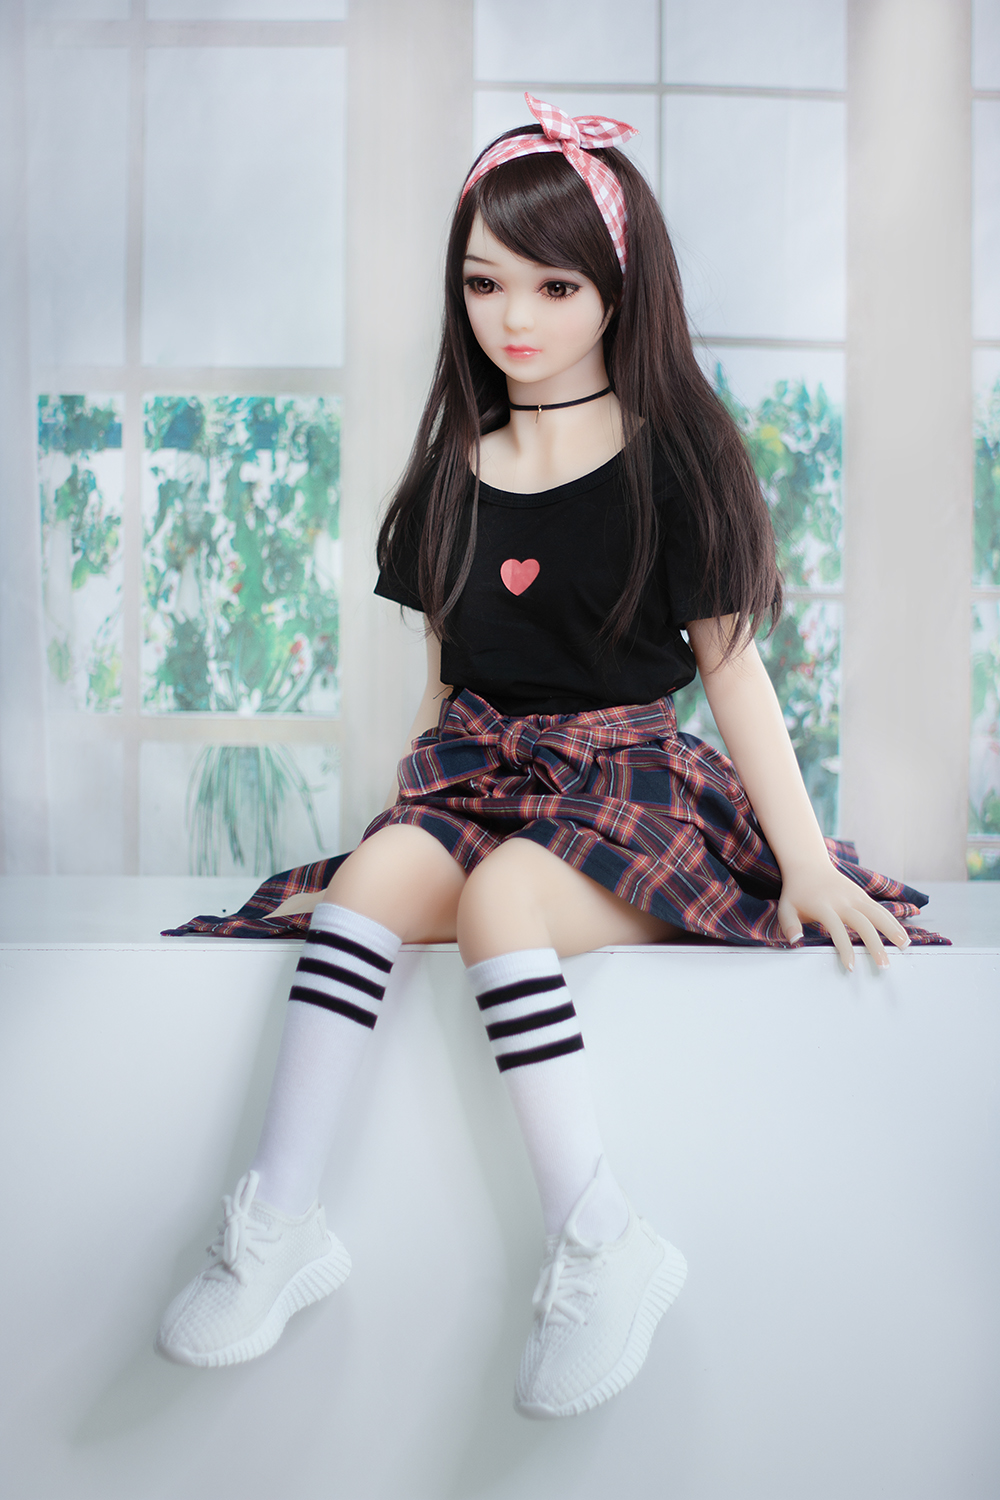 flat chest love doll sex with 100cm height - Techove Doll